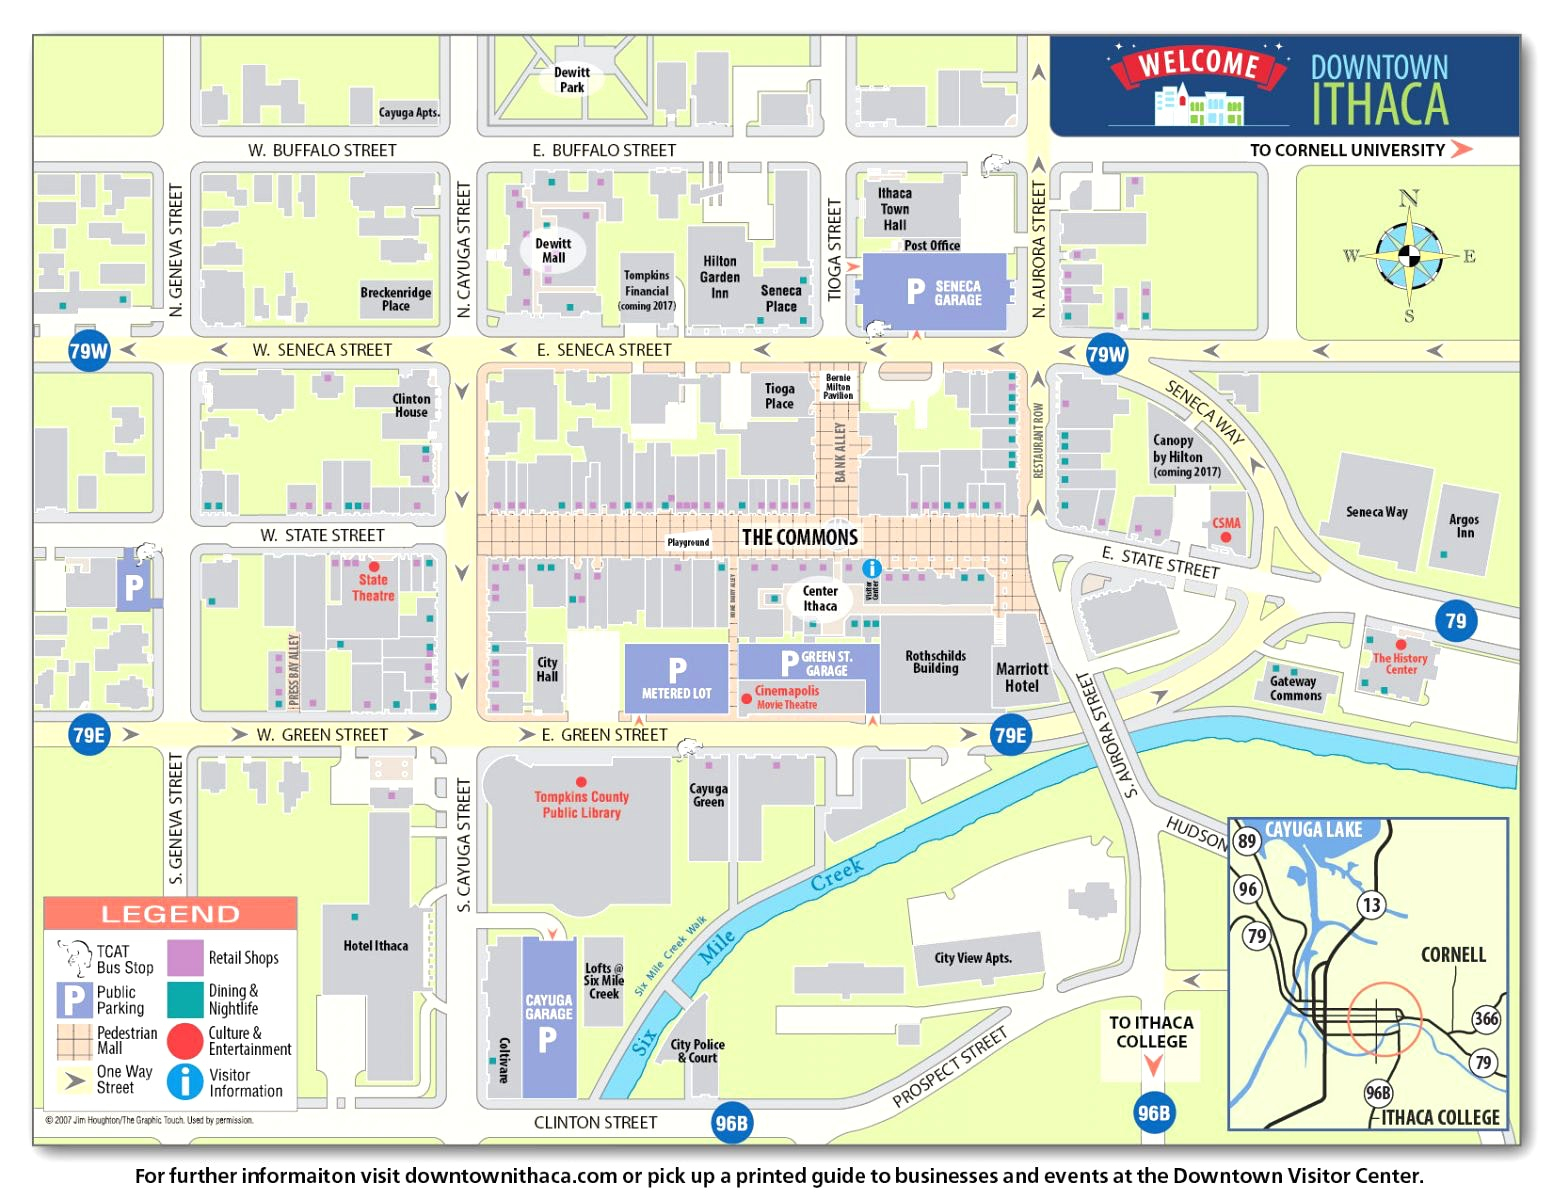 Printable Directions Map Maps Directions Downtown Ithaca Alliance - Printable Map Directions